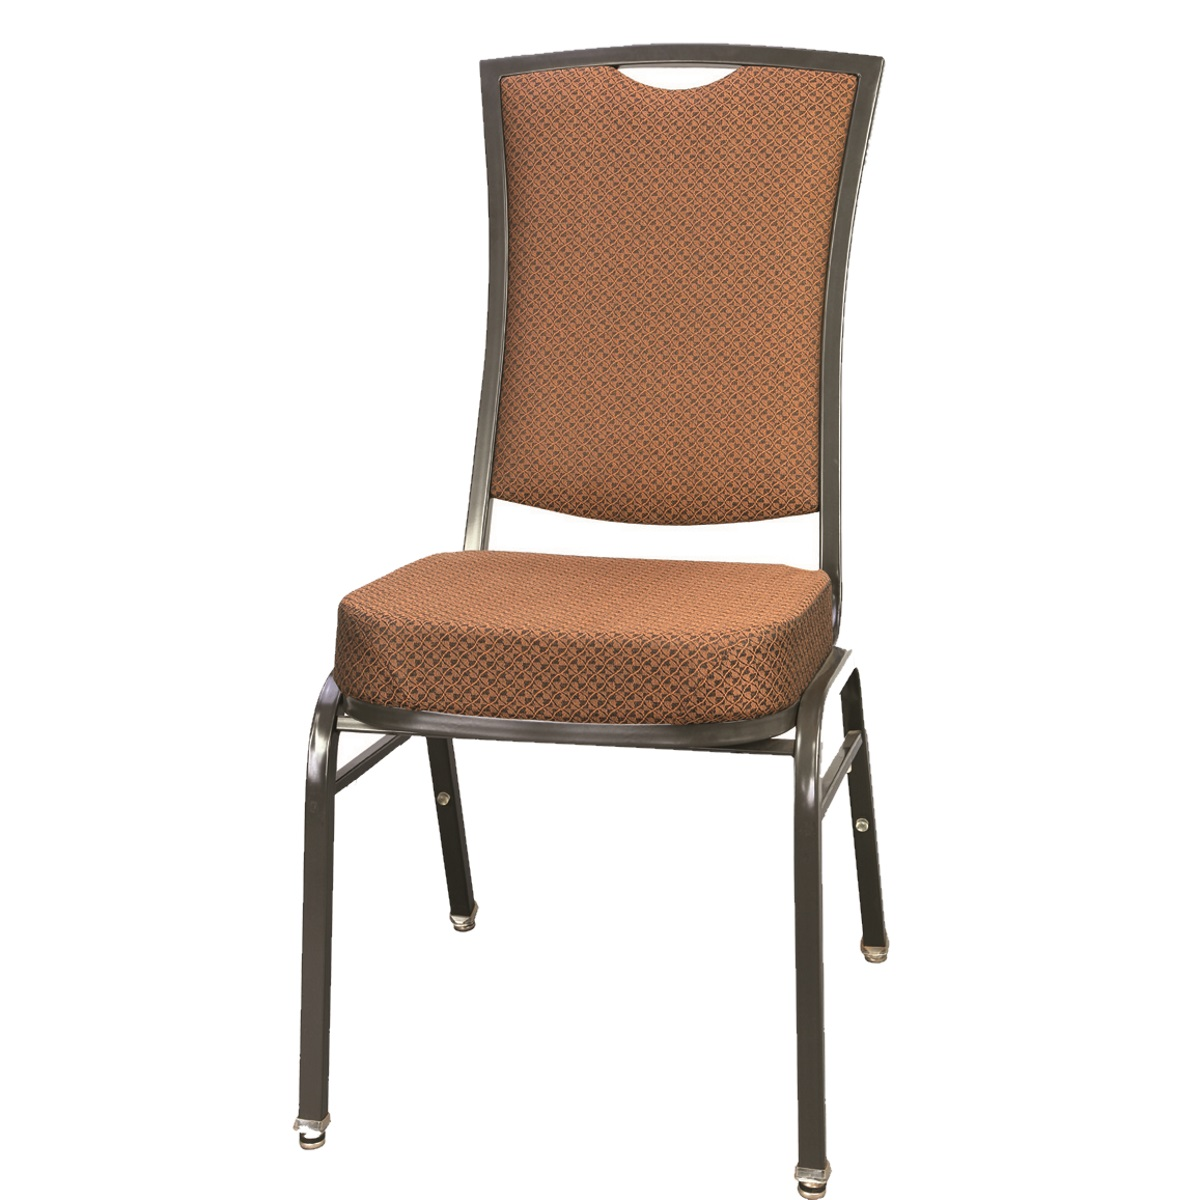 wood banquet chairs. Aluminum Arc Rectangle Banquet Chair Wood Chairs